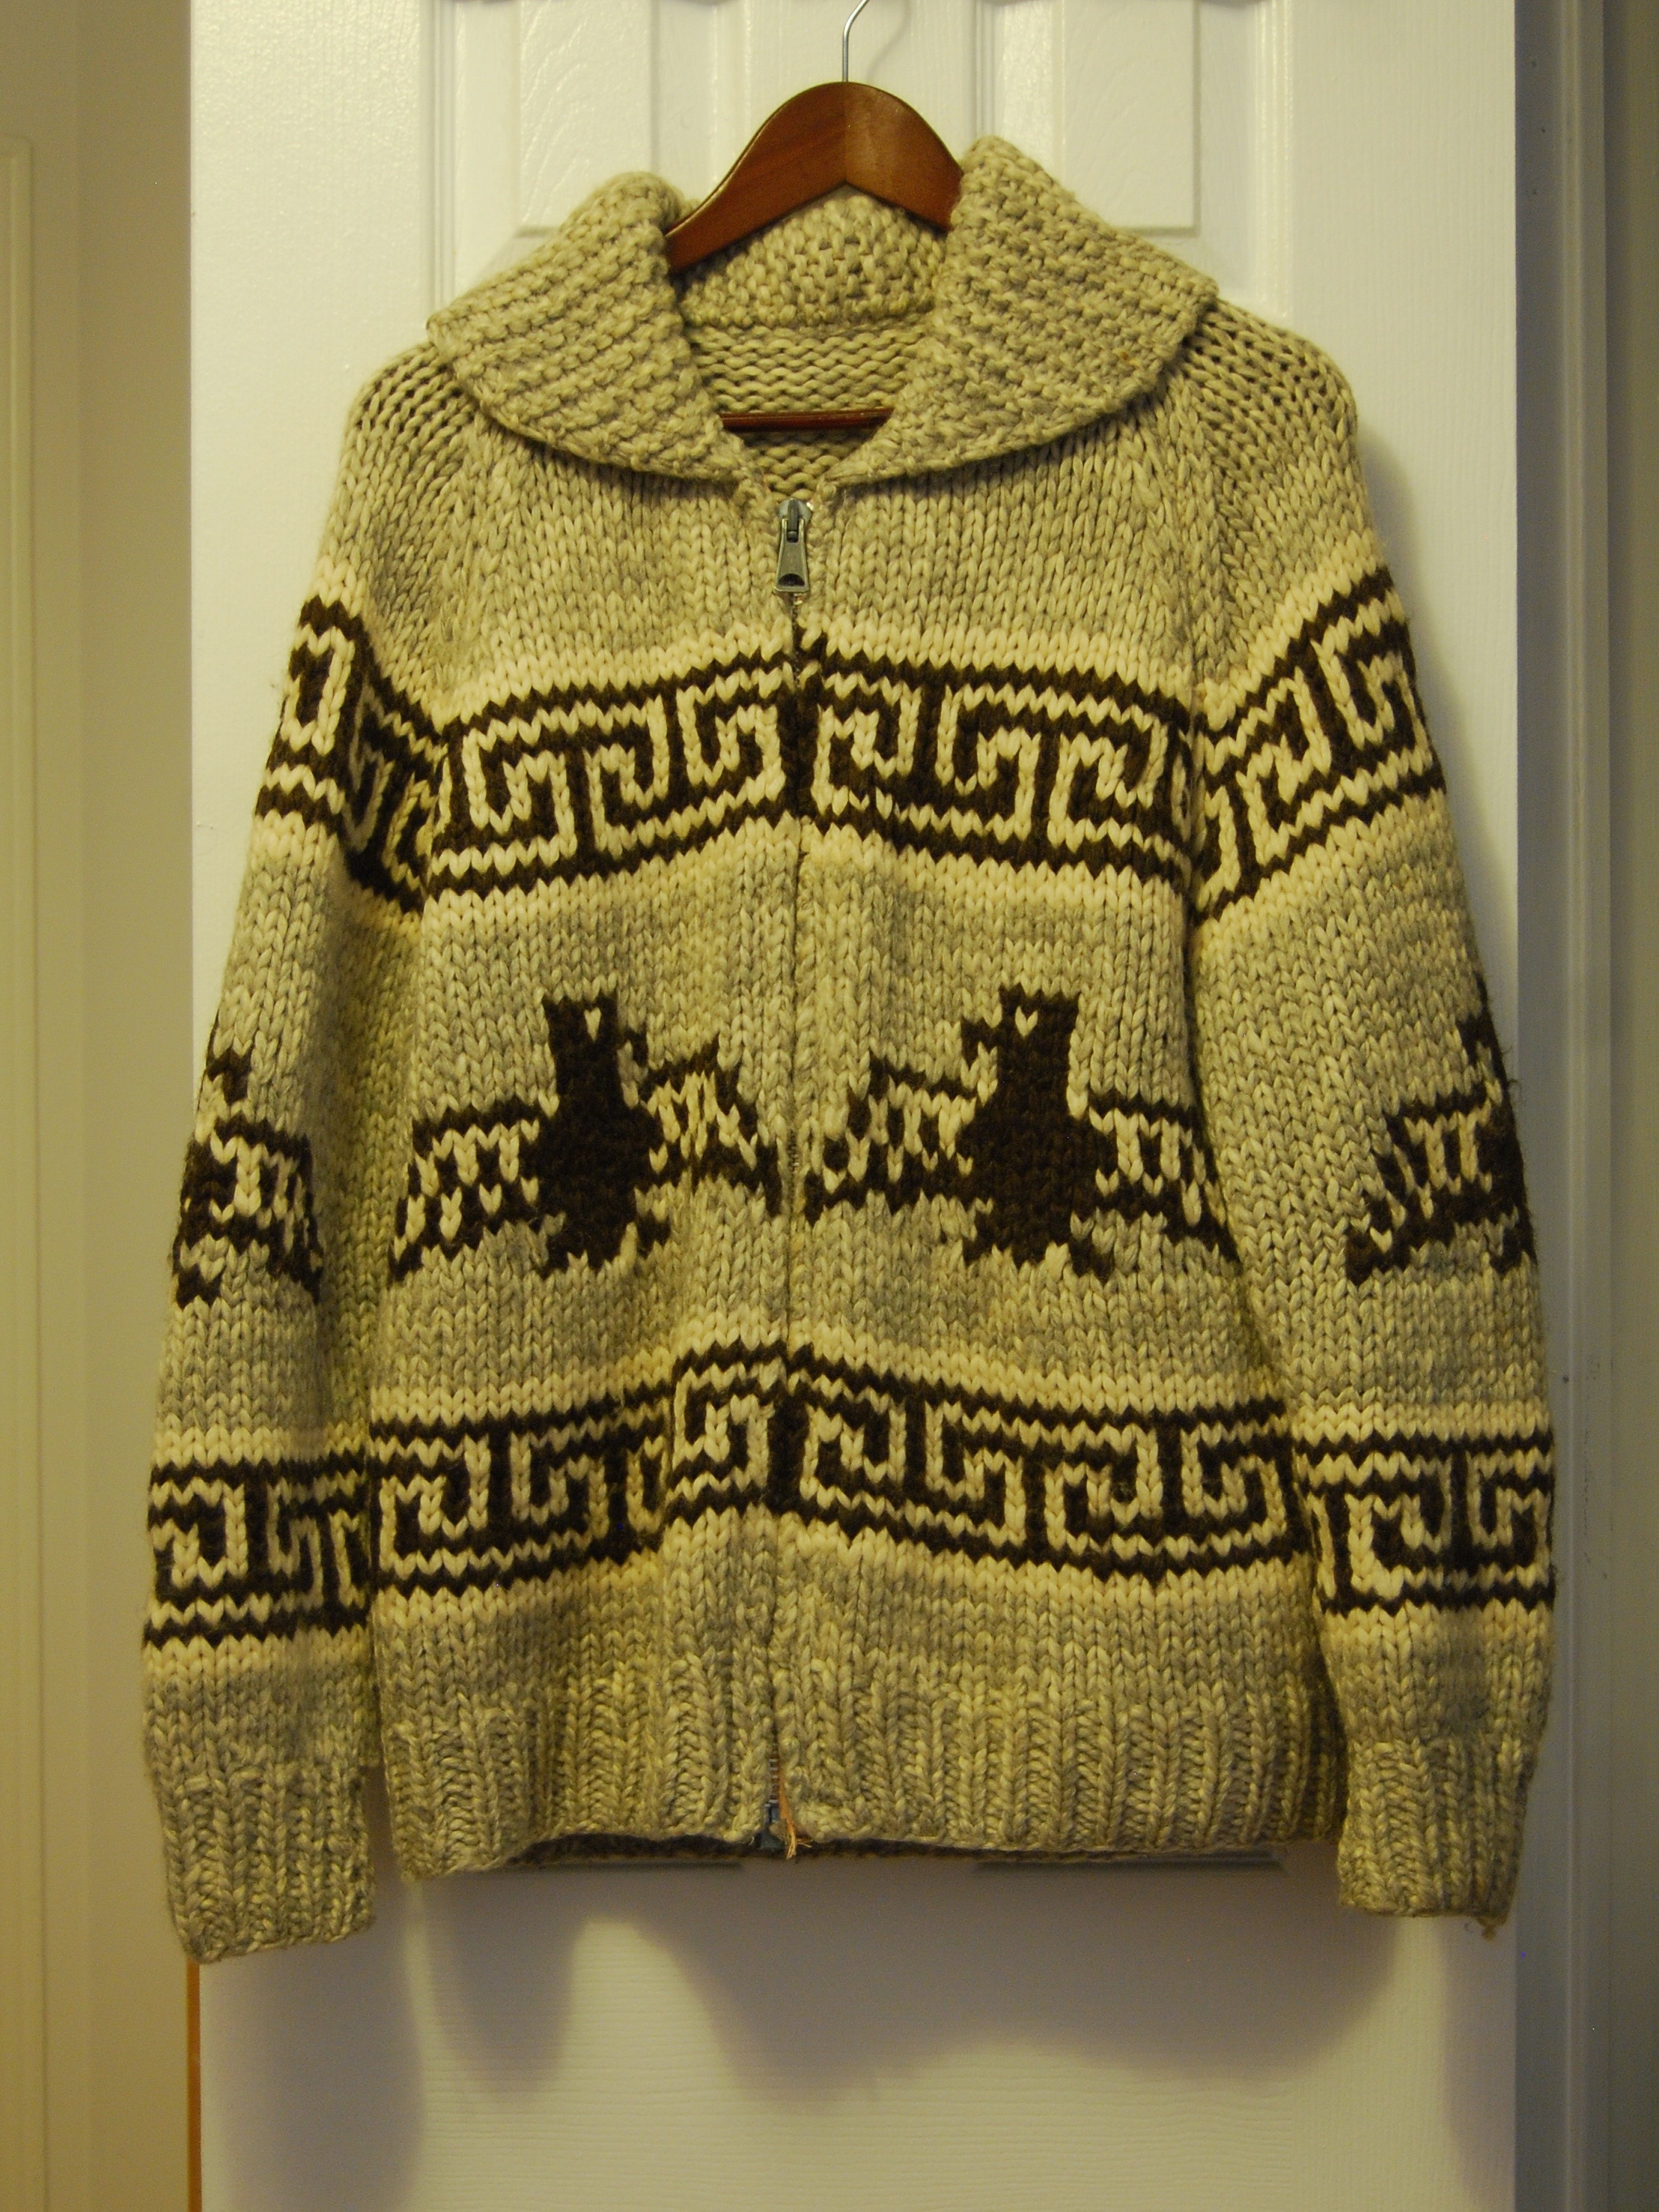 a6acead5bd39 The Cowichan Sweater  A History of the Handcrafted